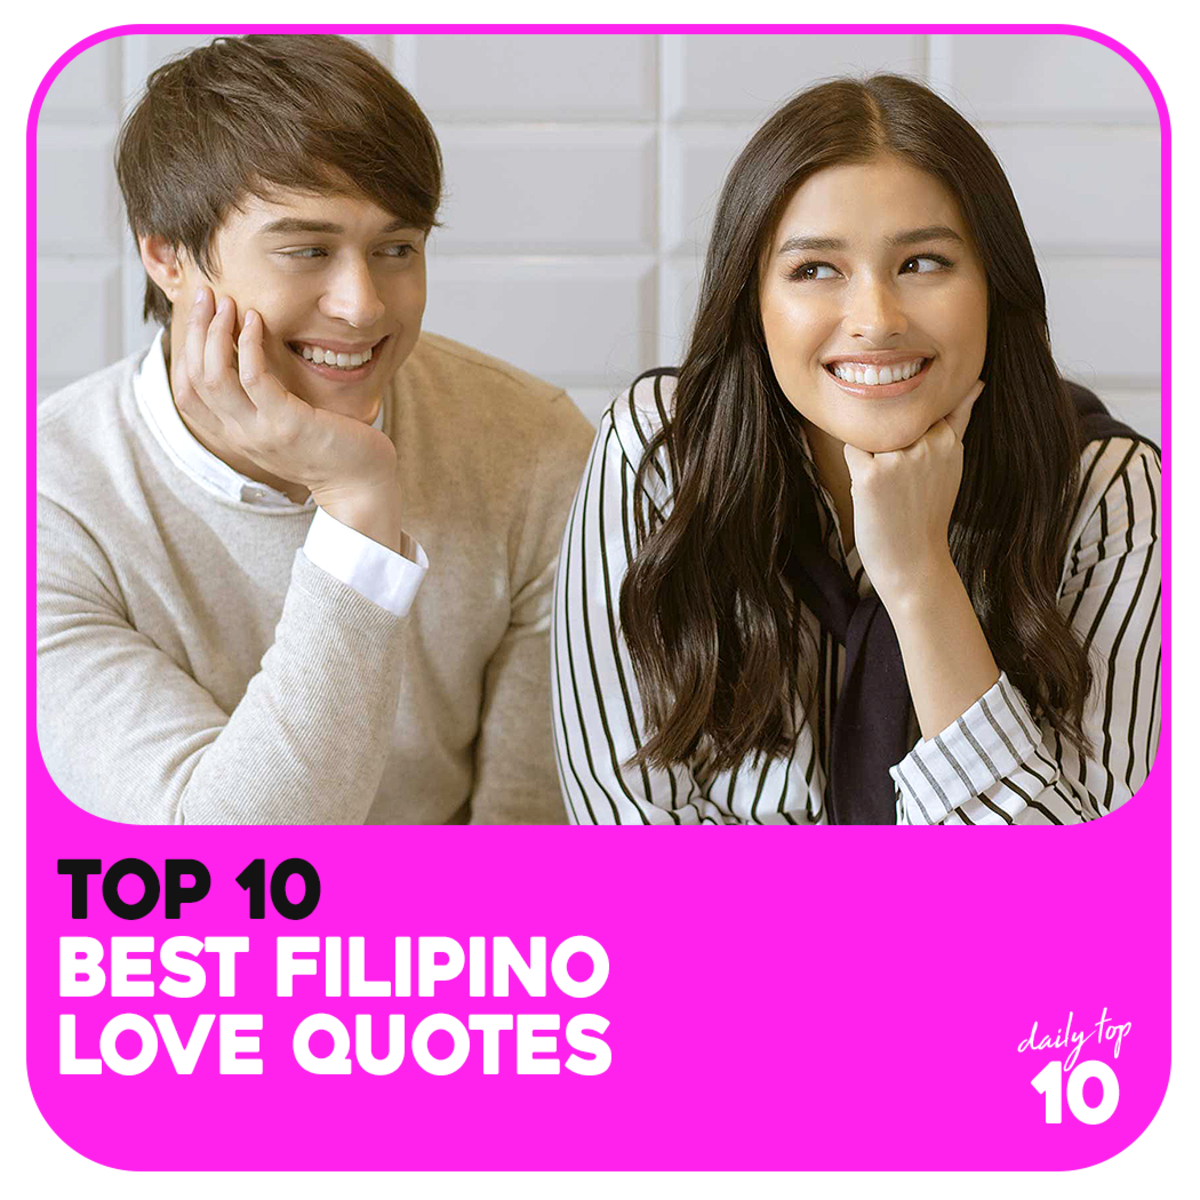 Top 10 Best Filipino Love Quotes Featuring Lizquen, Jadine, and Kathniel